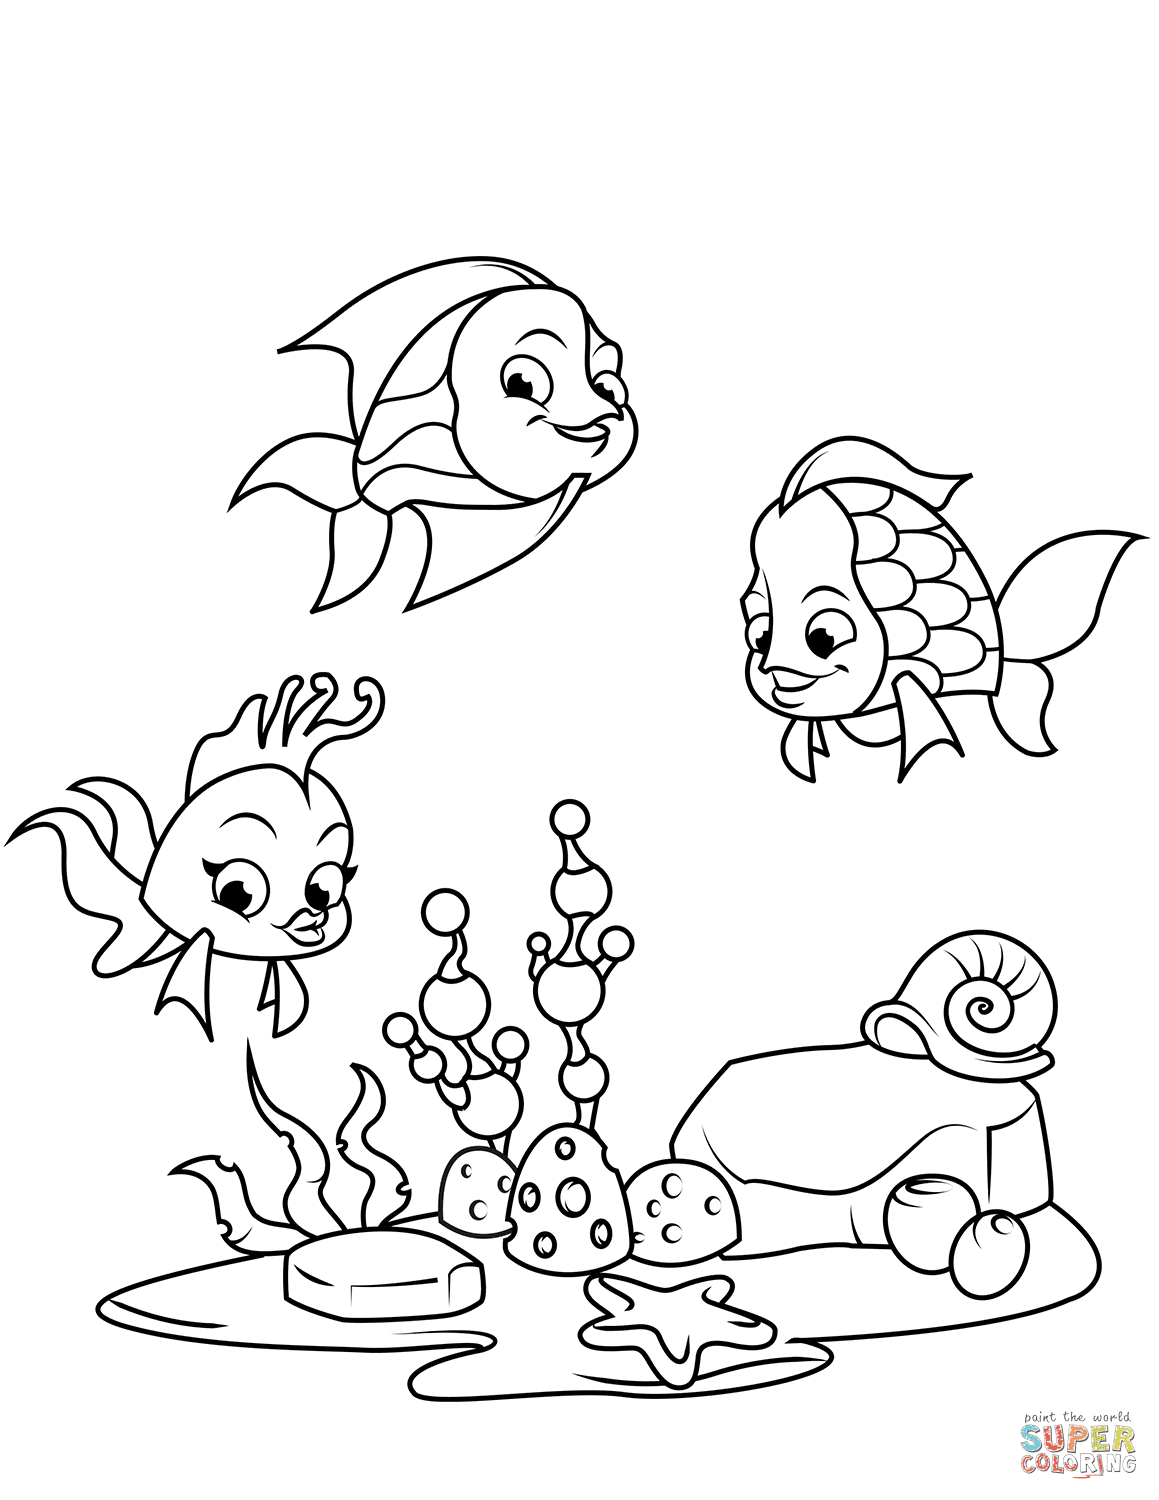 Coral Reef Fish coloring page | Free Printable Coloring Pages